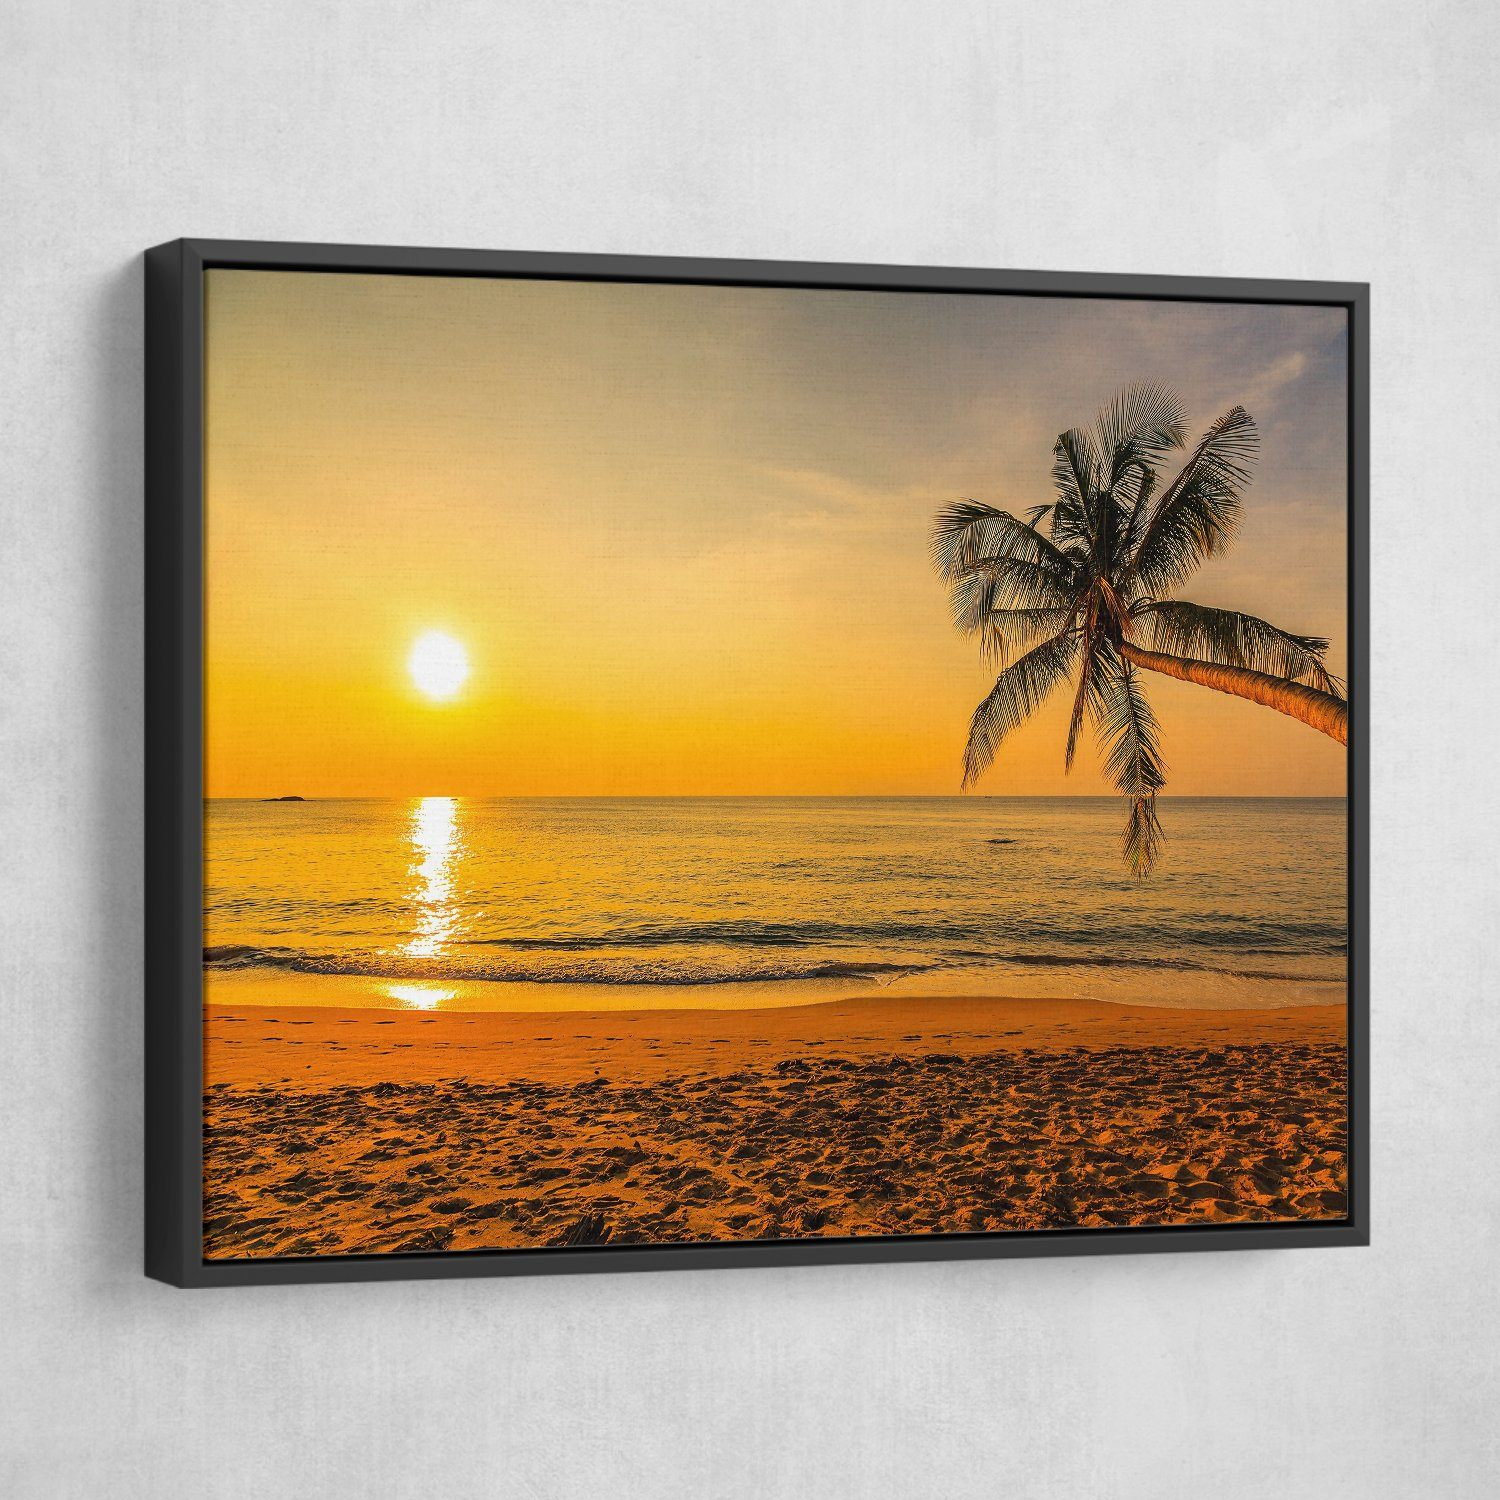 Sunset by the Beach living room wall art